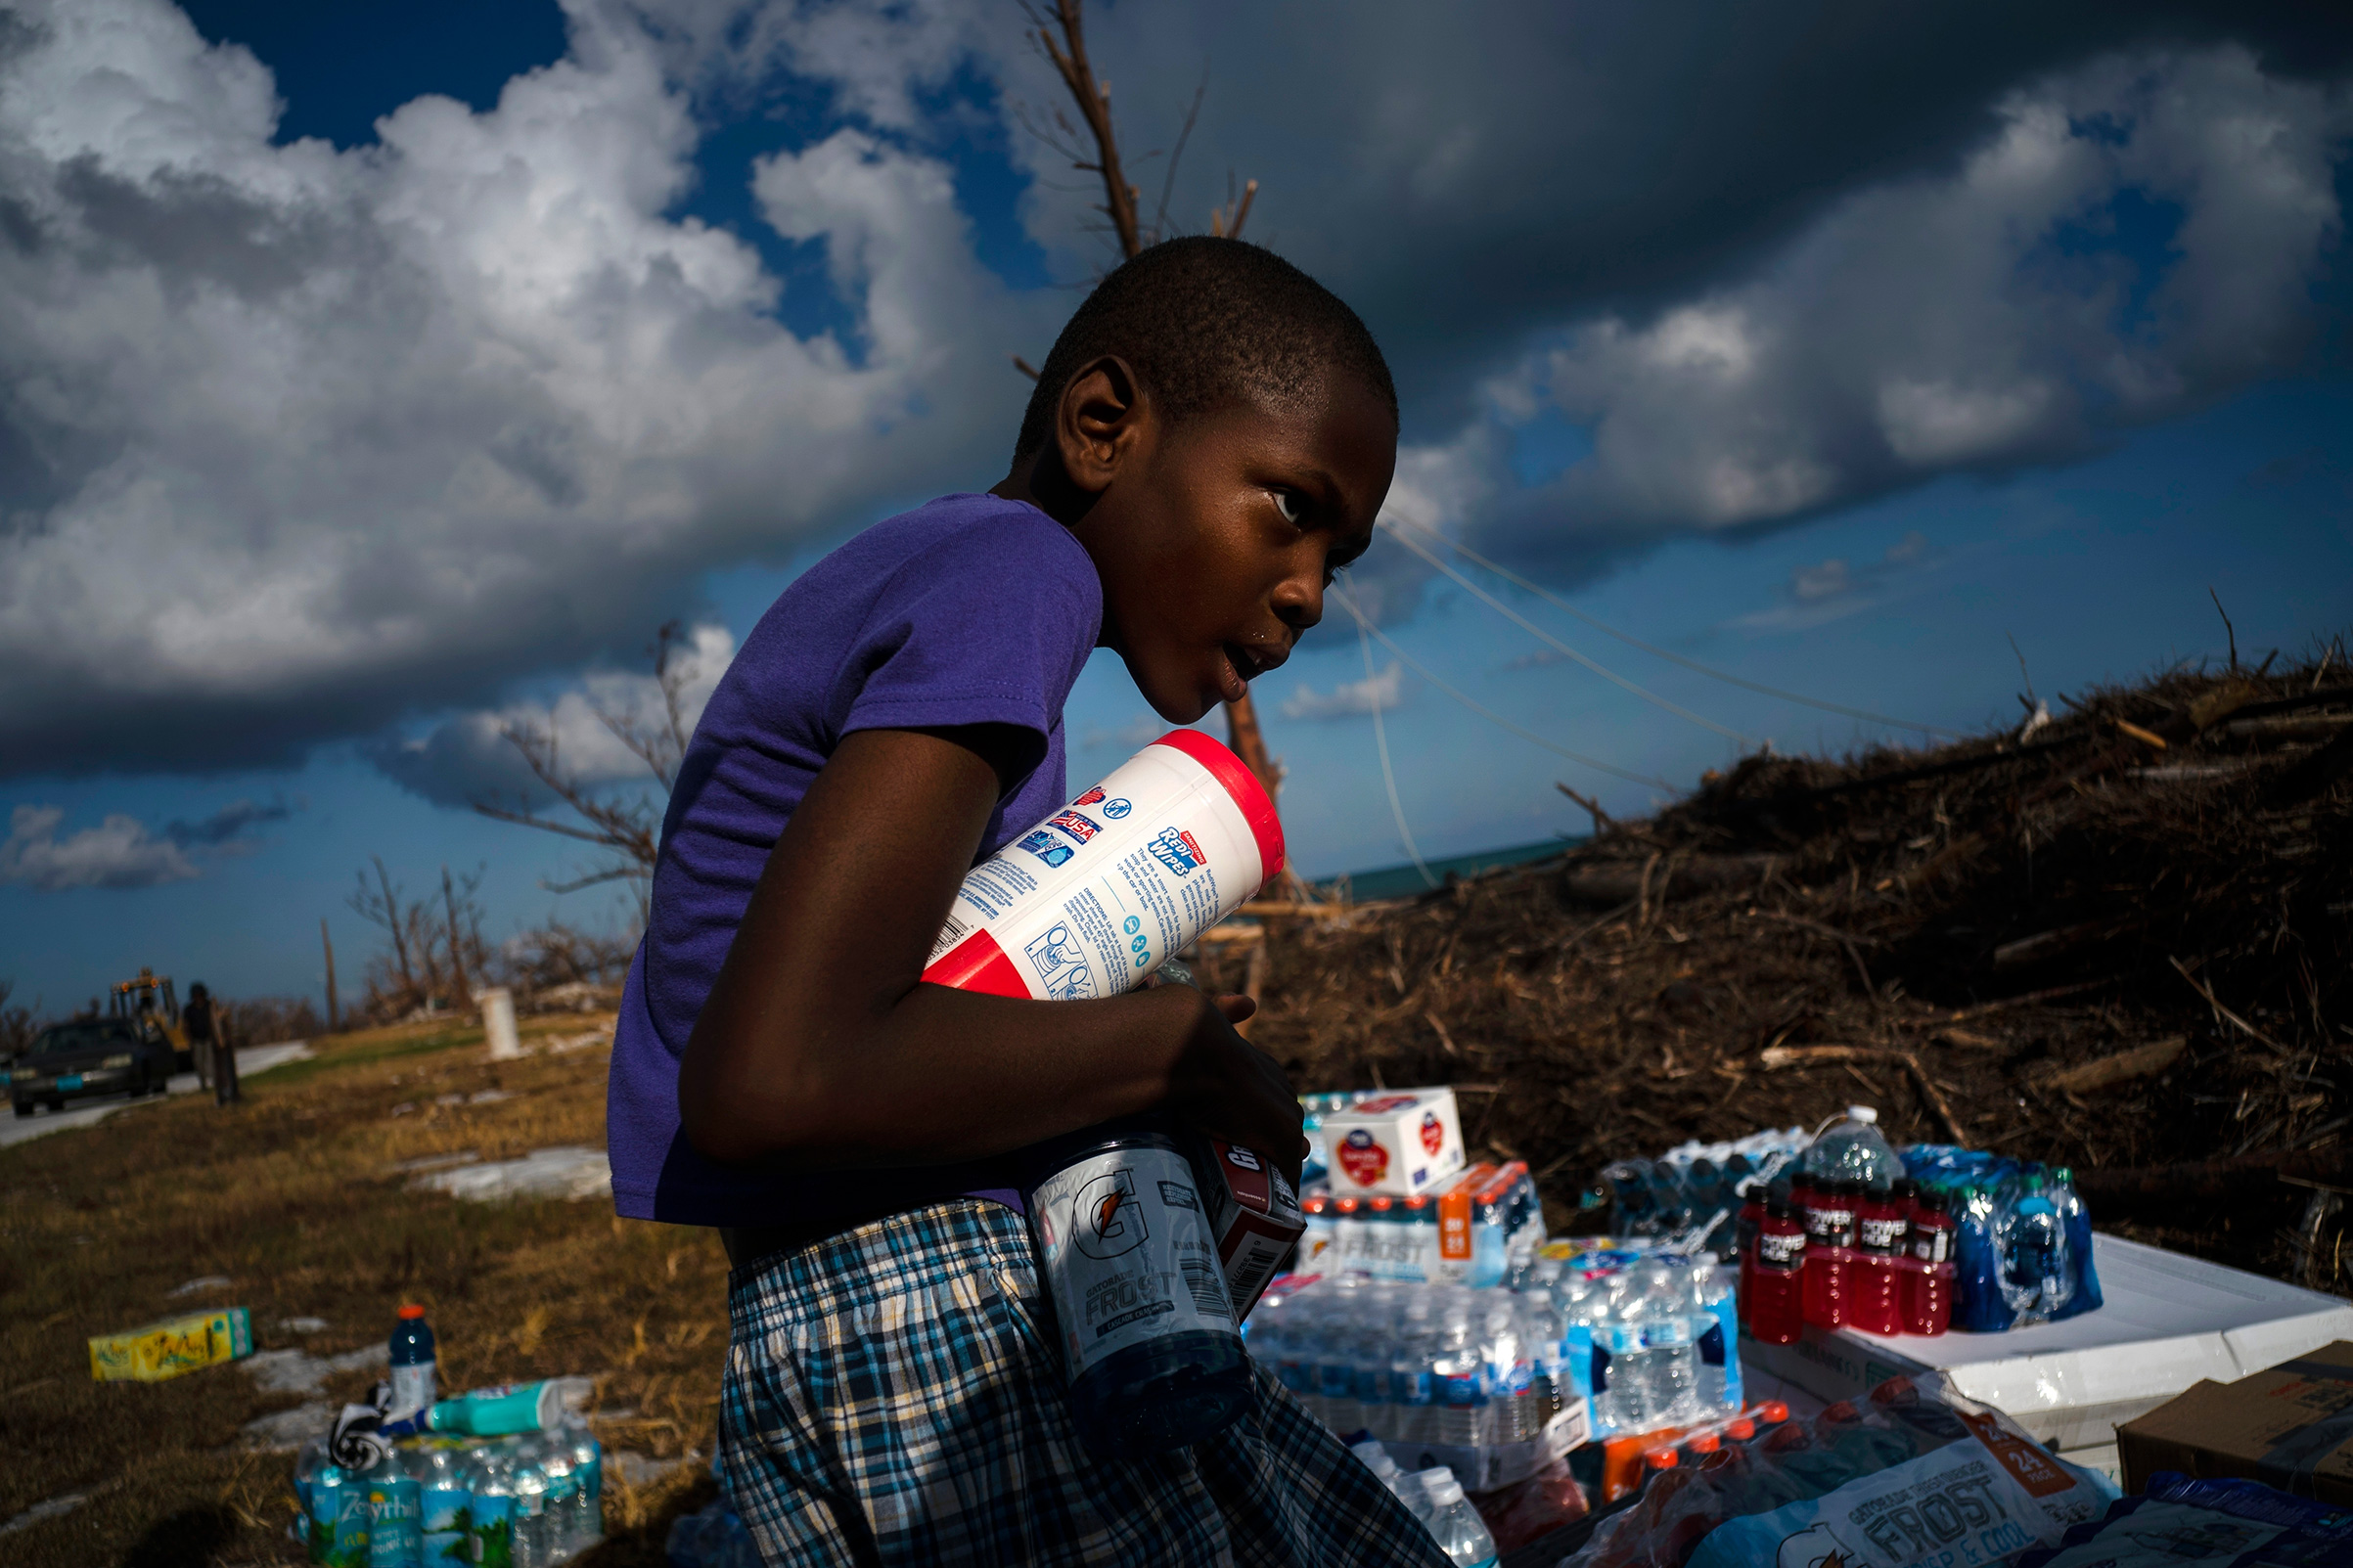 Ayfon Minus, 8, collects donated food that was brought by helicopter from Freeport to the Hurricane Dorian destroyed village of High Rock, Grand Bahama, Bahamas, Sept. 10, 2019.